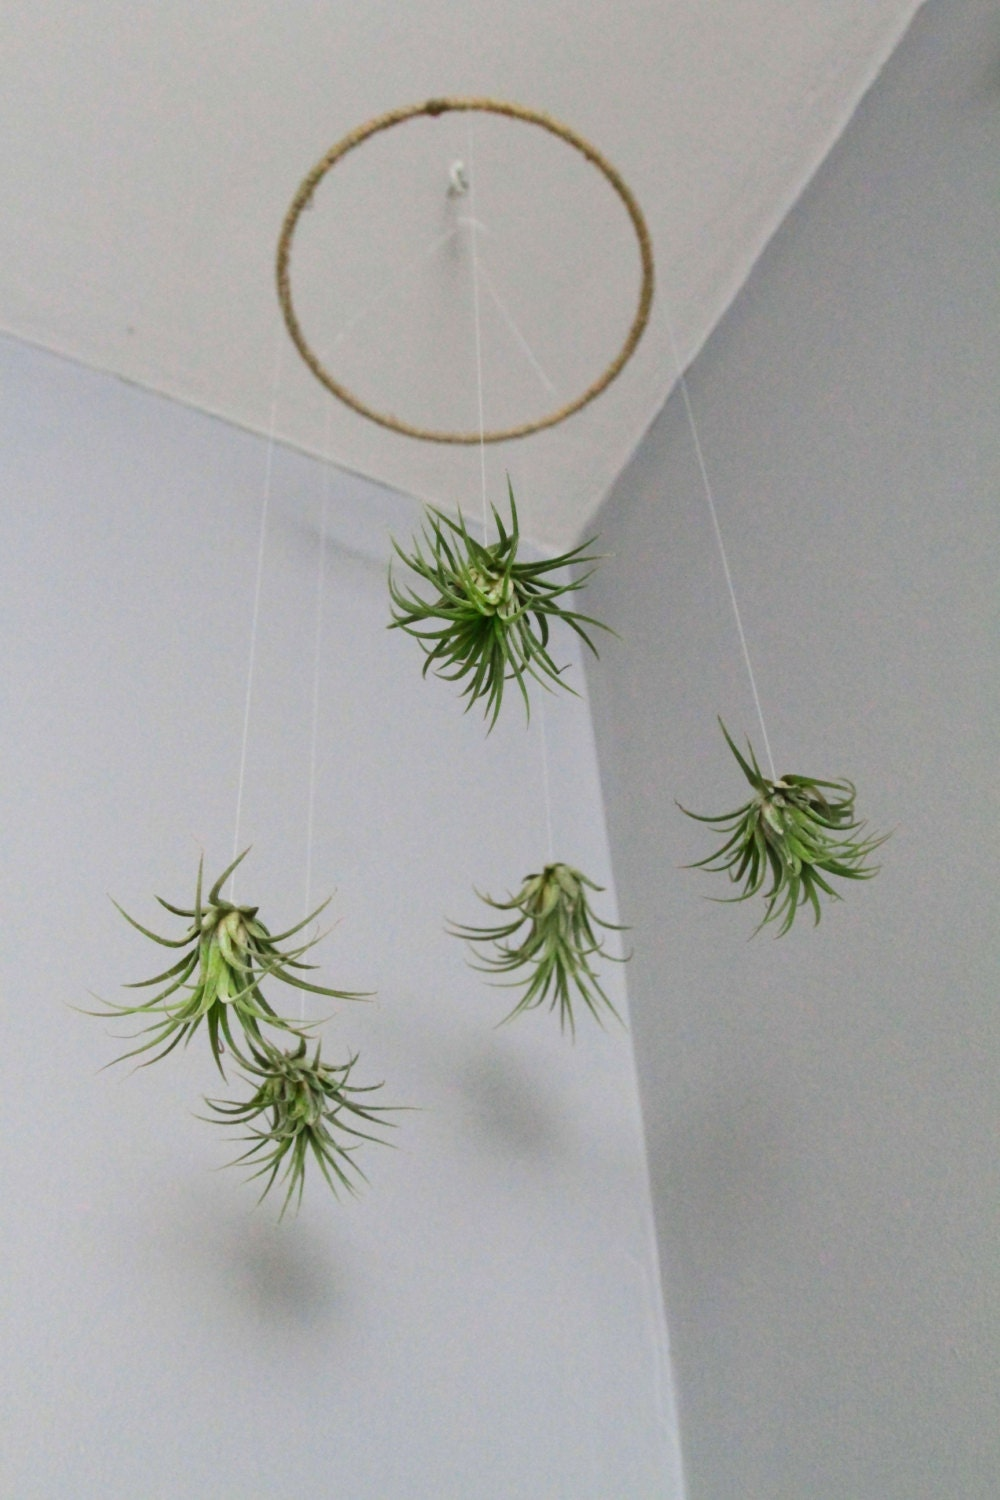 Air plant mobile natural living decor home decor for Plant decorations home